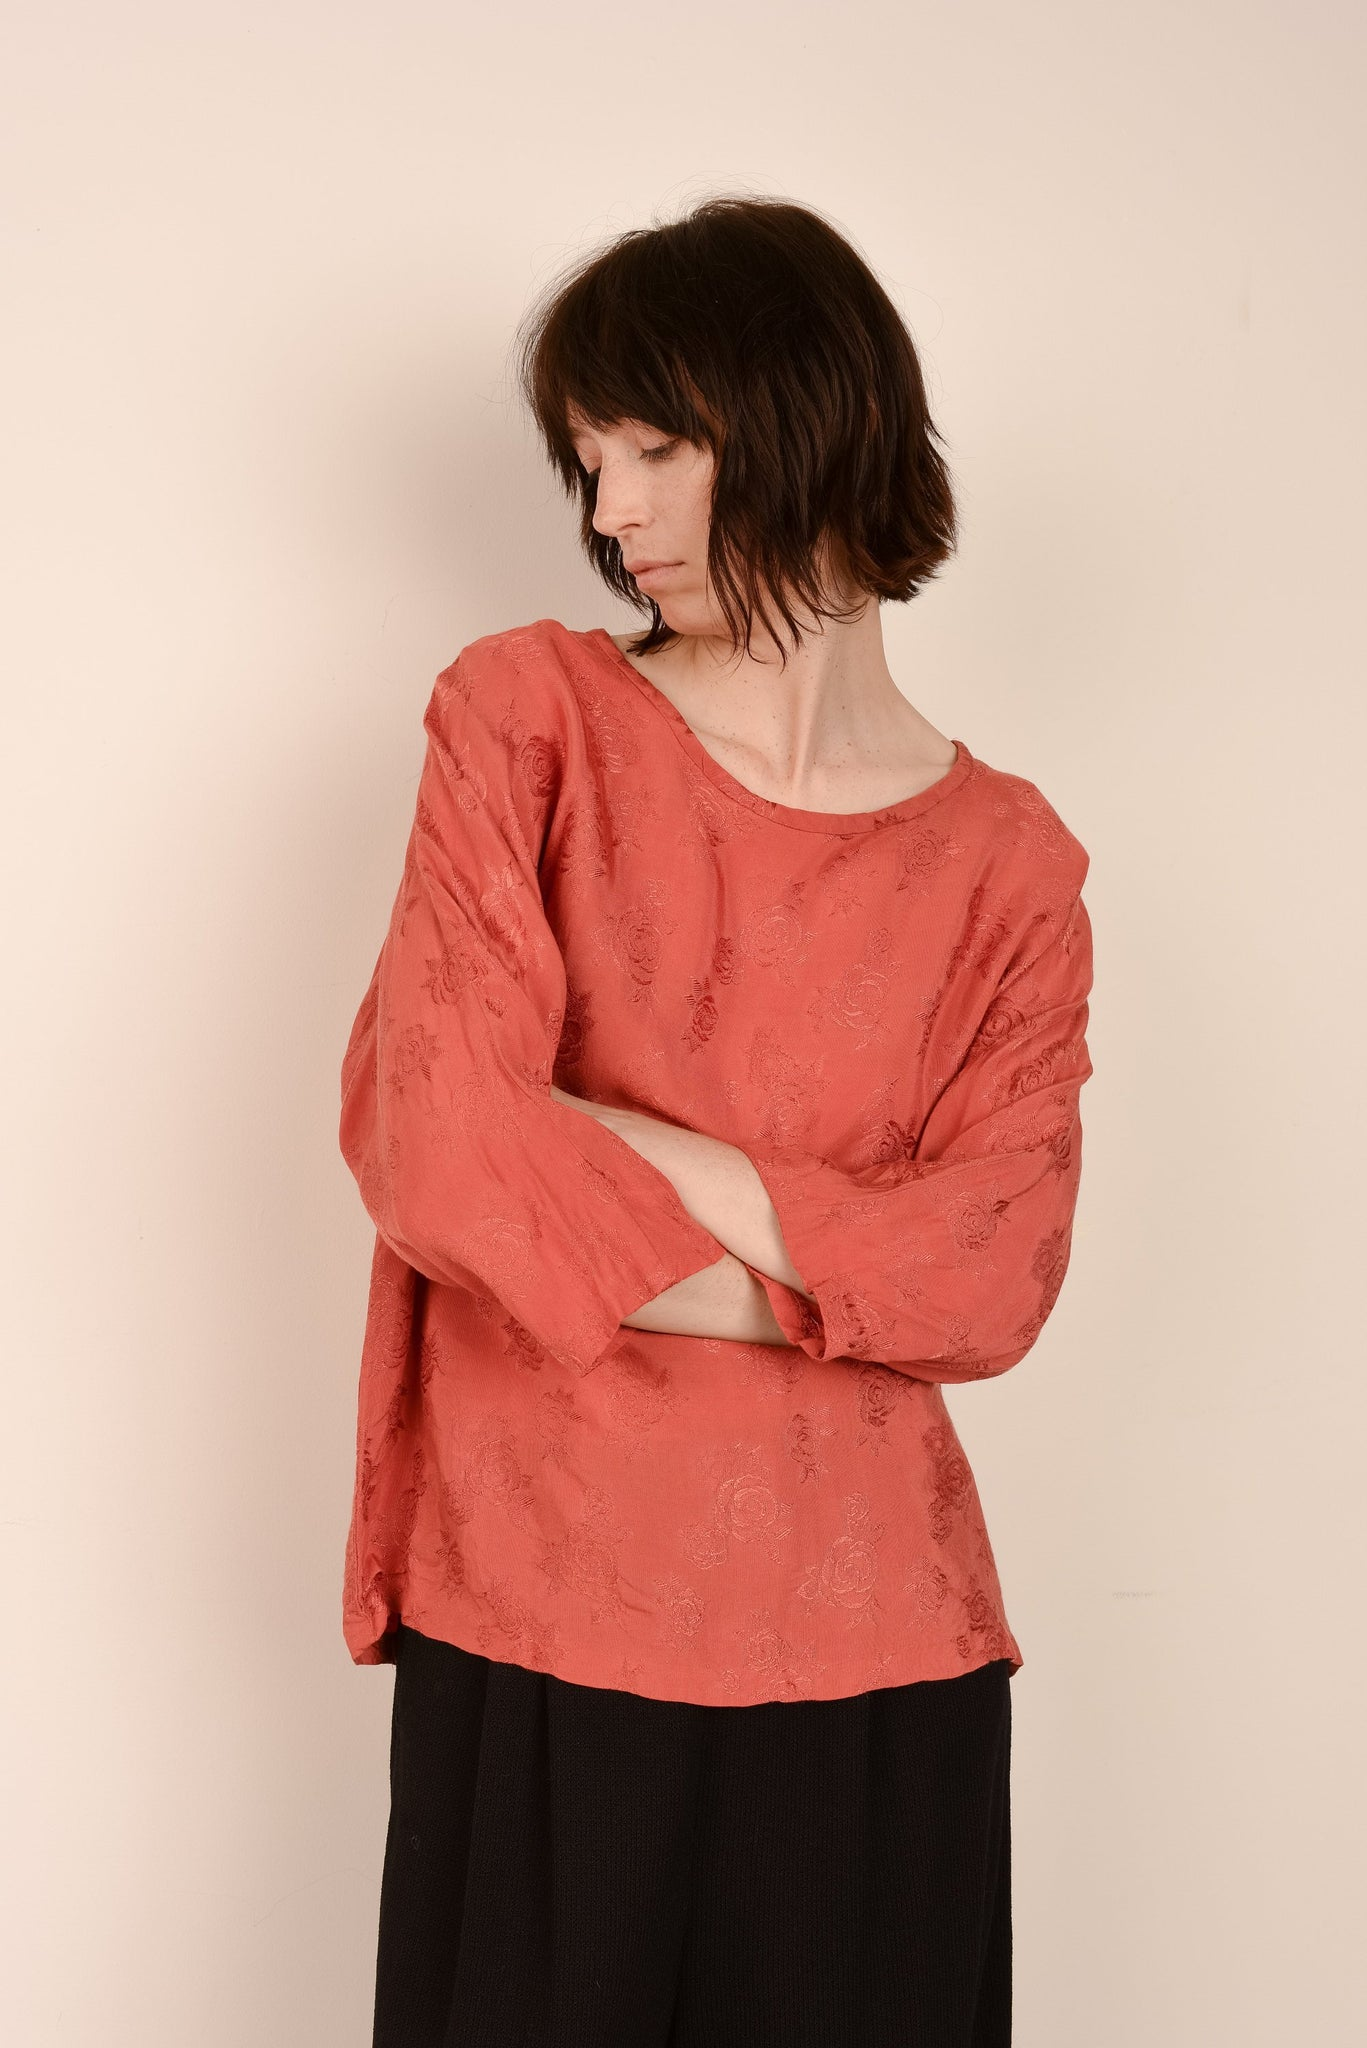 Vintage Floral Rust Oversized Shirt / S - Closed Caption